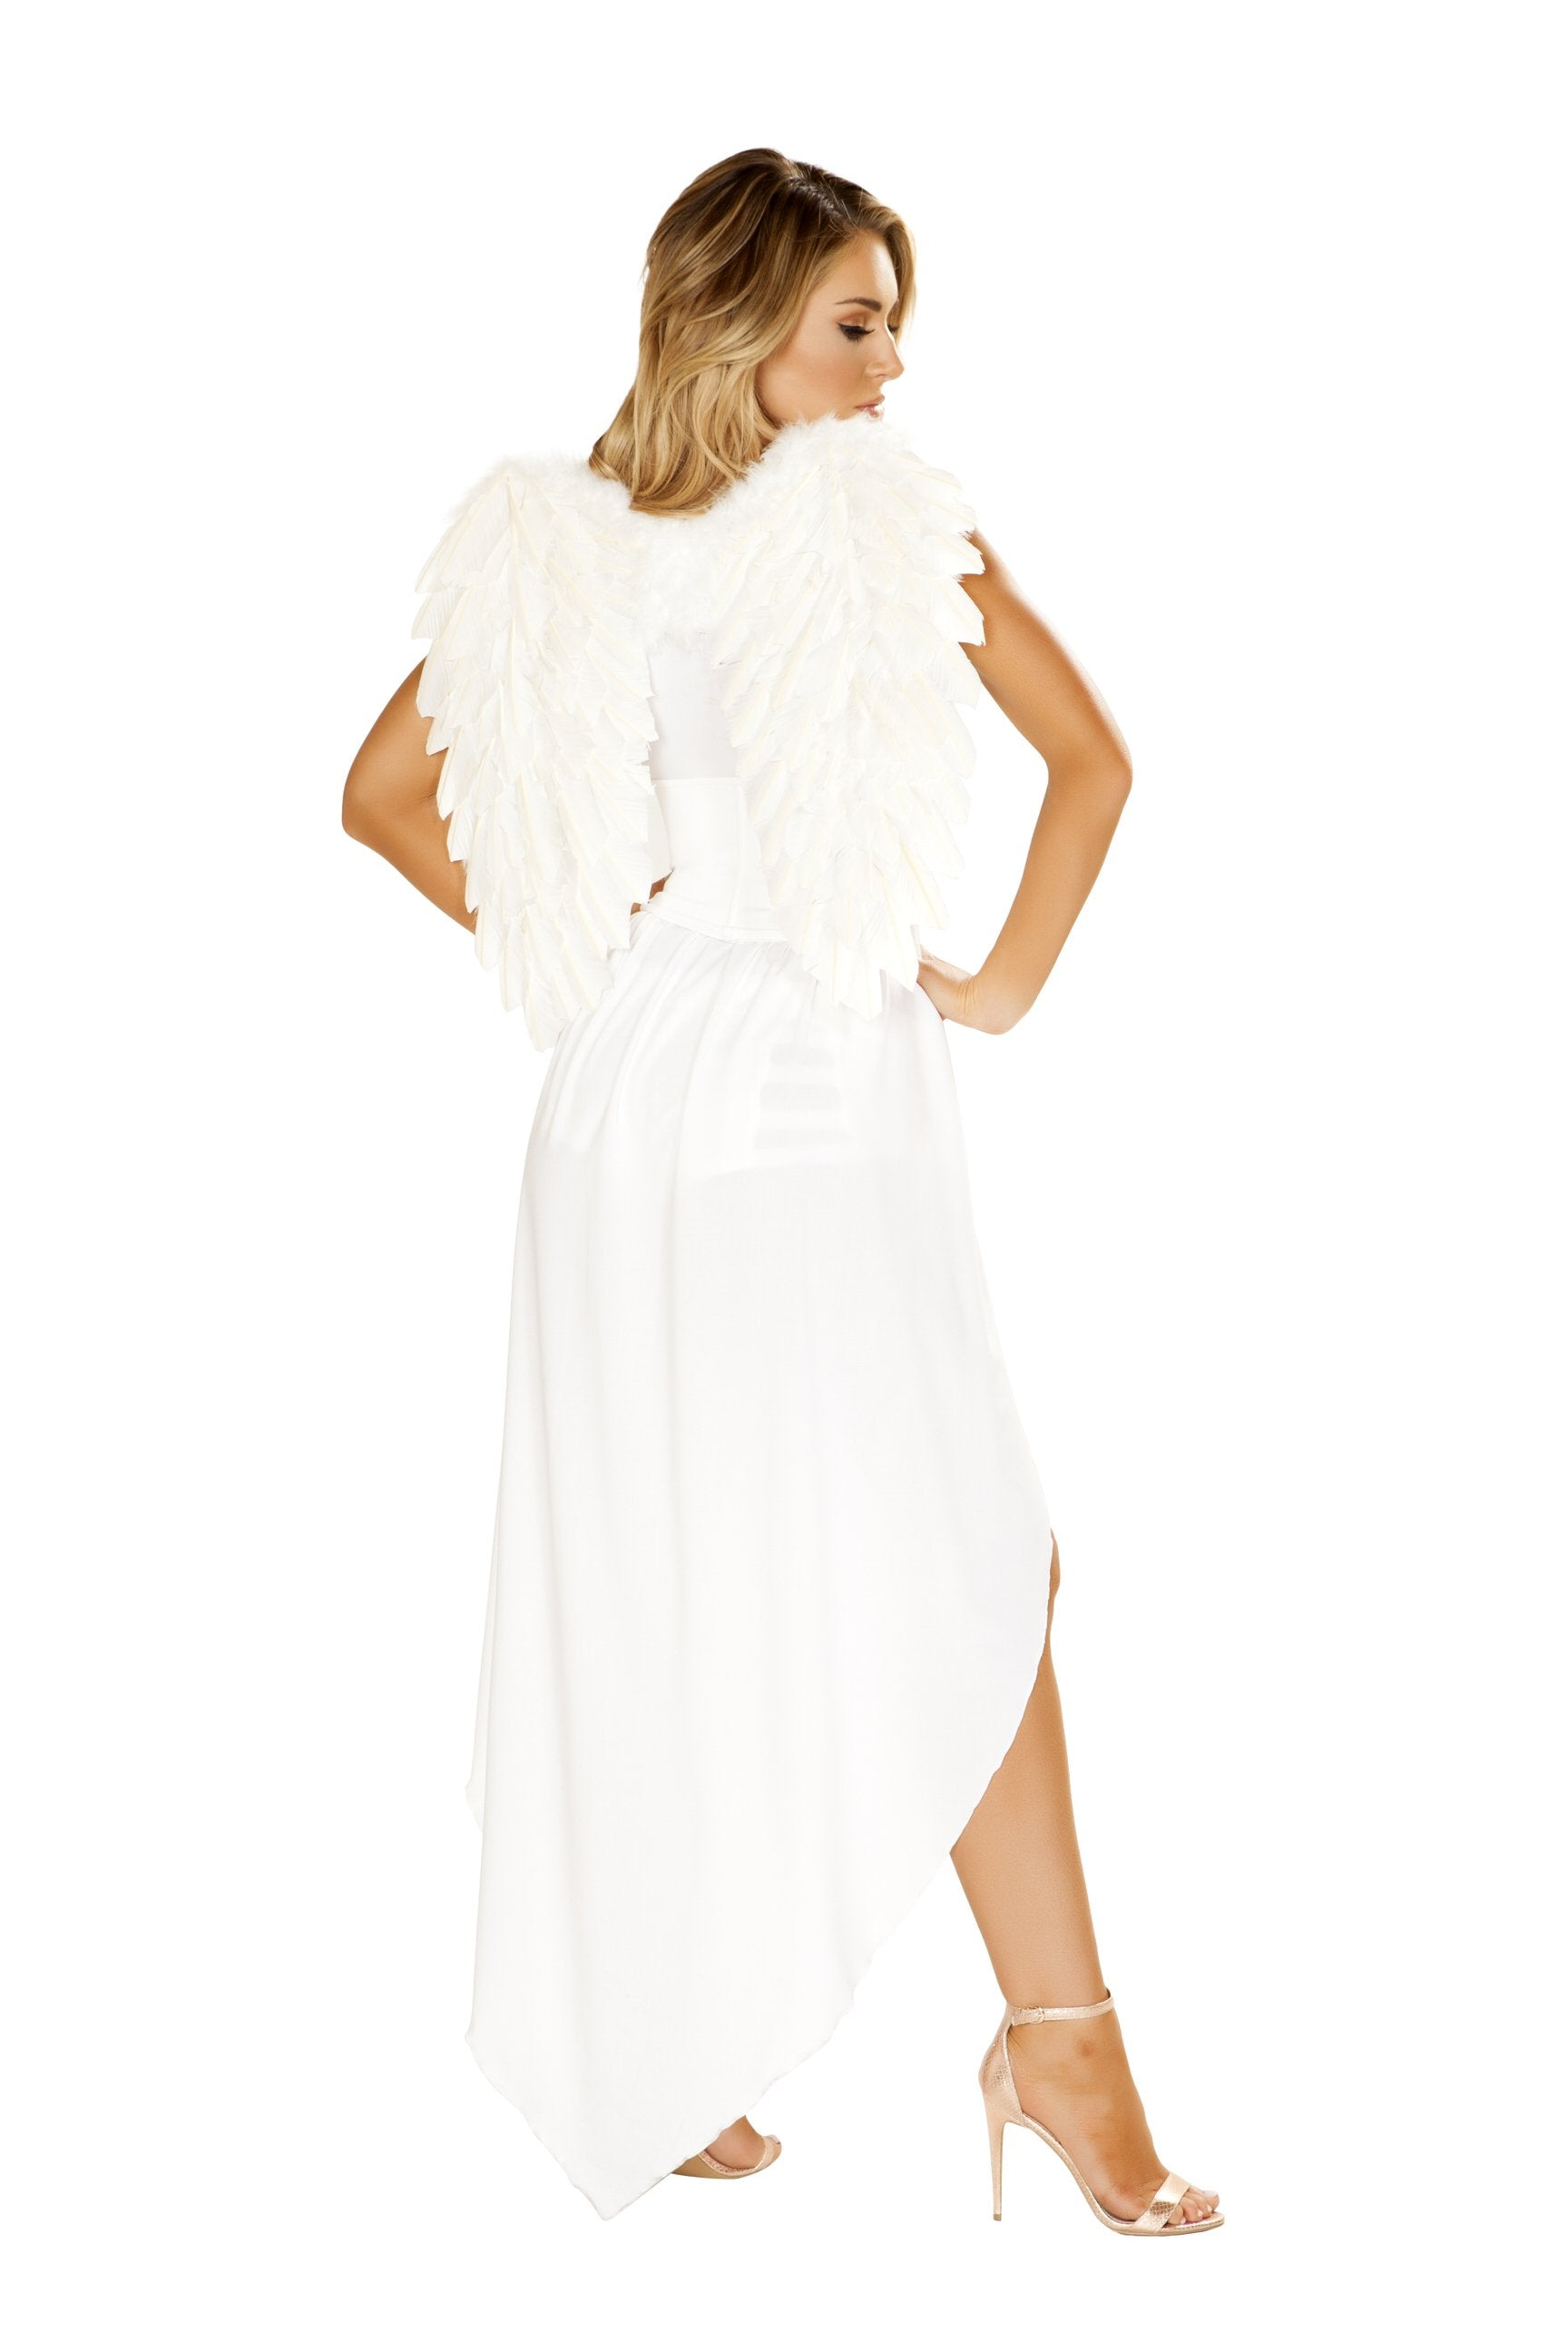 4869 - Roma Costume 2pc Angel Diva Greek Goddess